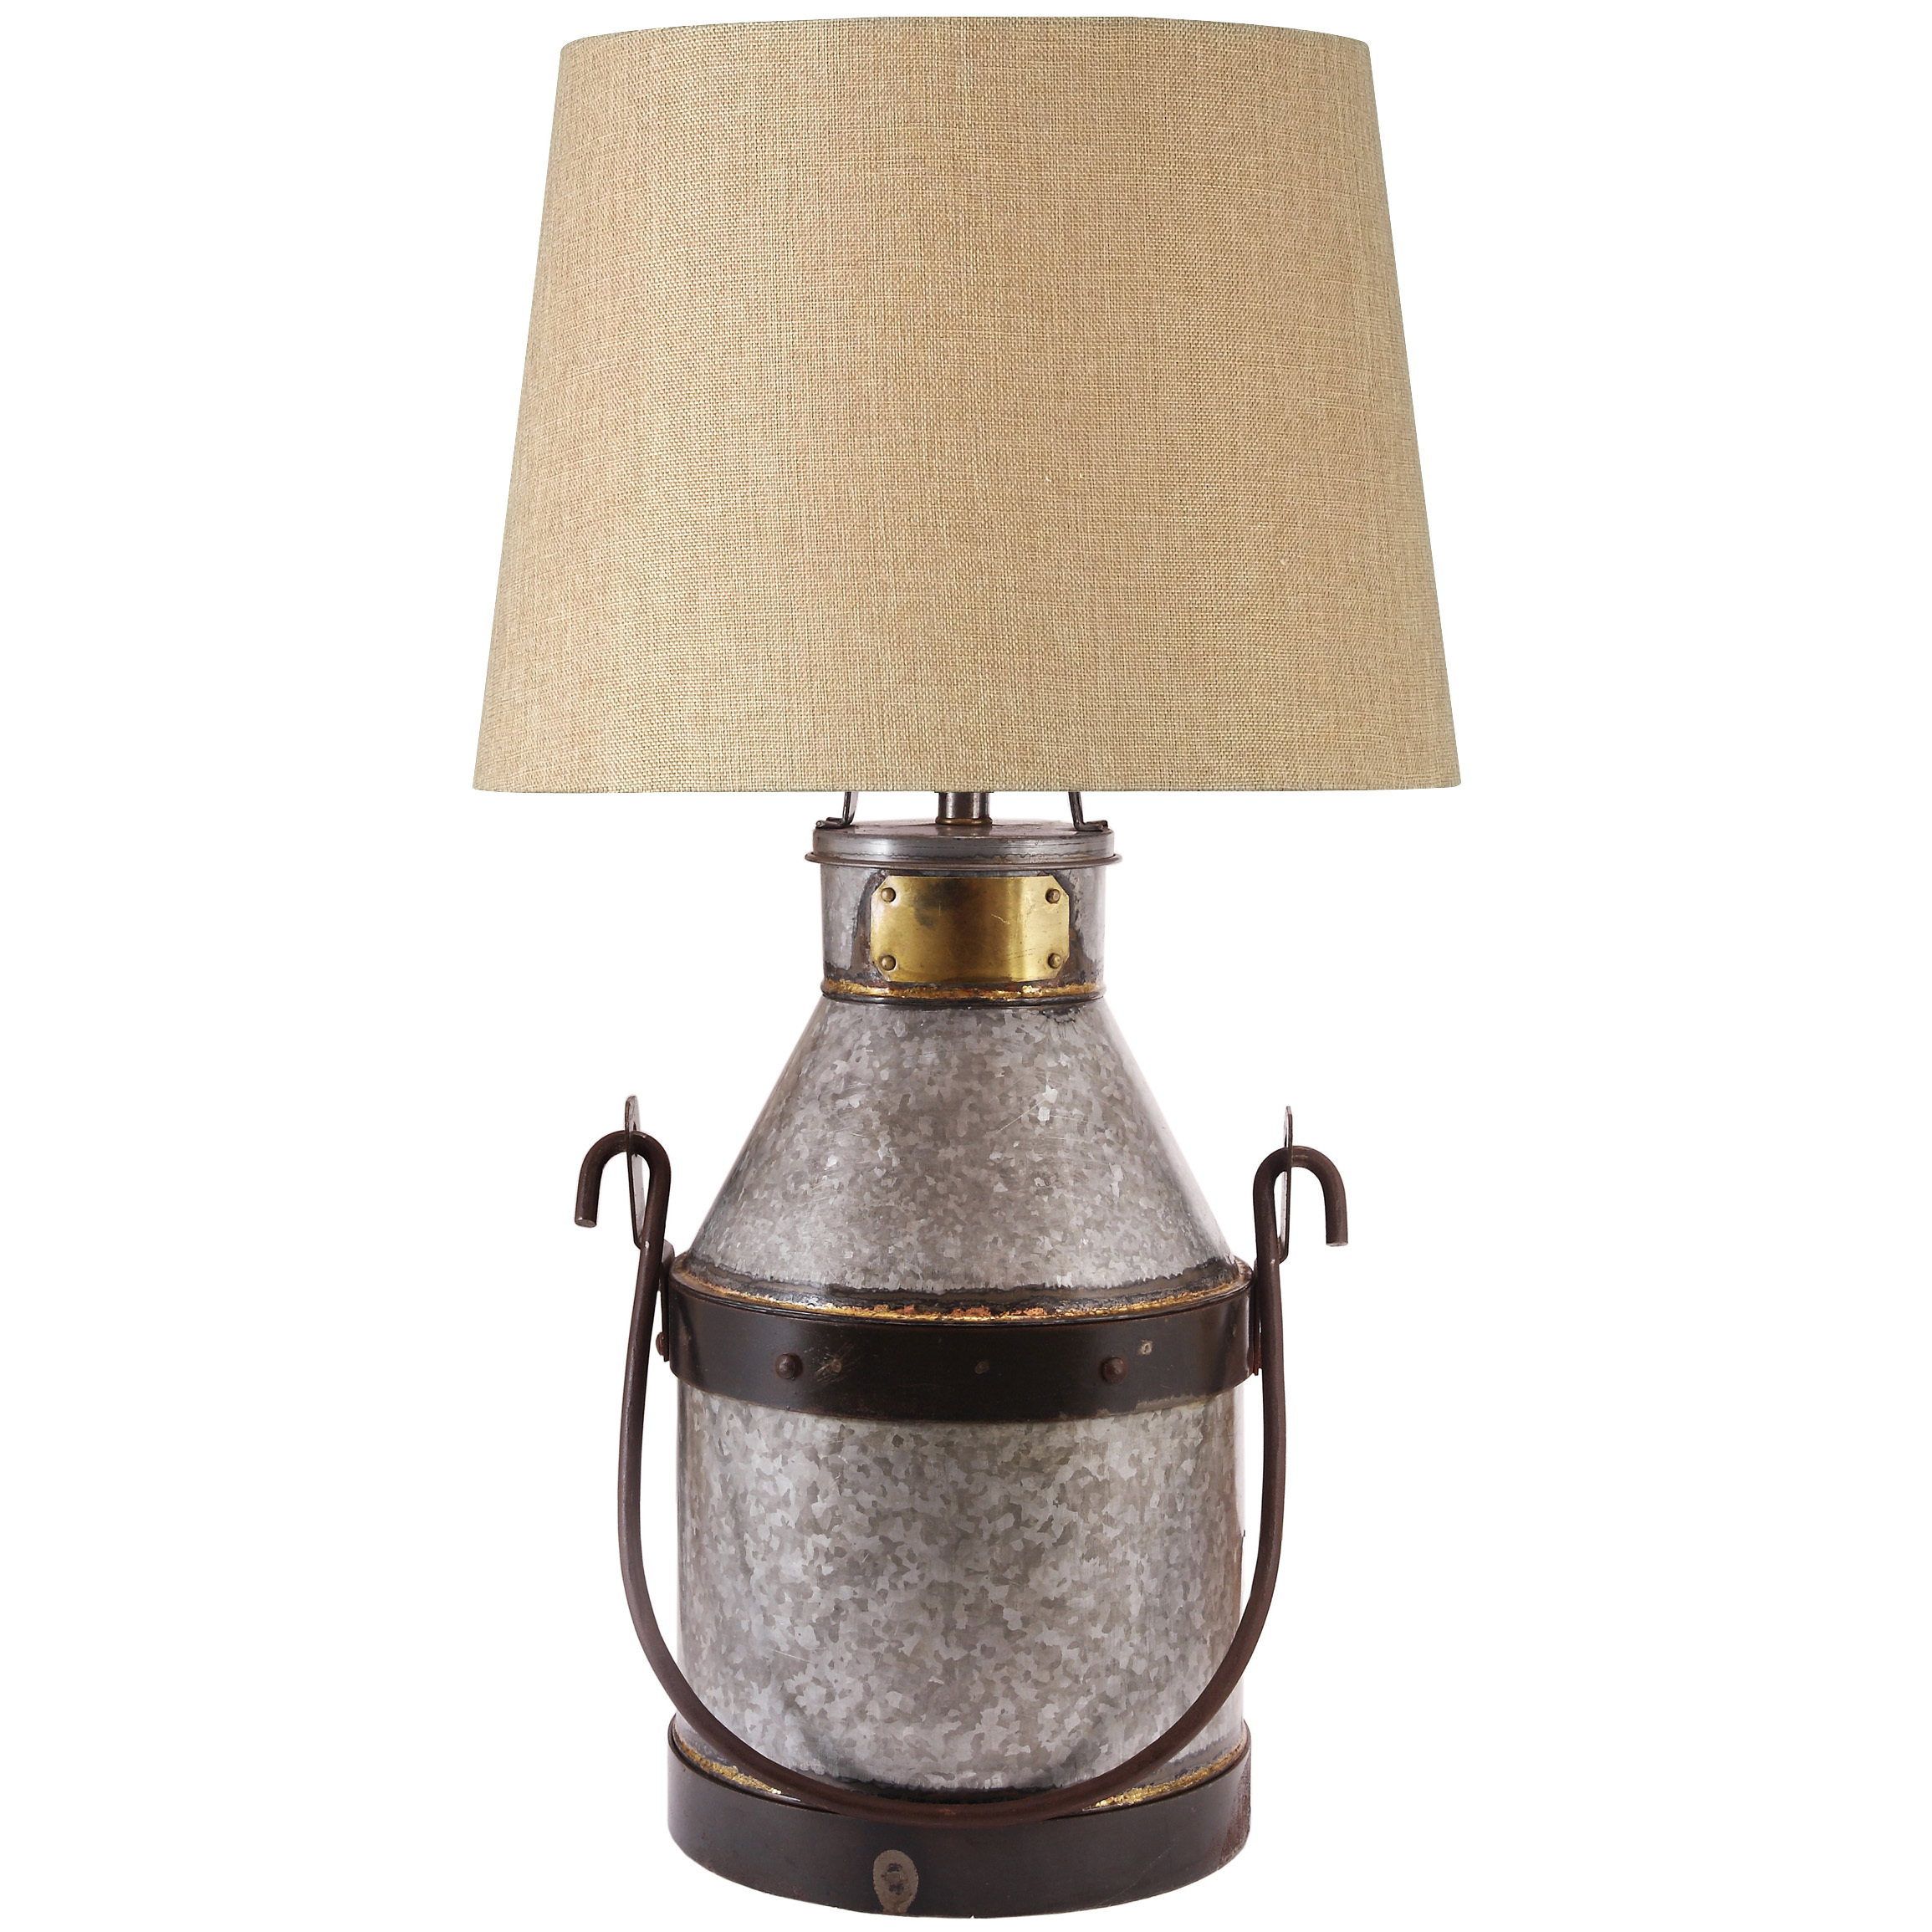 "Kenroy Home Cudahy Table Lamp puts found-object style in a whole new light! Mimicking the classic milk jar of days gone by, the Cudahy Table Lamp brings Old World sophistication to the modern decor. Solidly built from galvanized iron, with bronze finish and felt bottom to protect surfaces. Lamp stands 29""h. Tan fabric shade measures 16"" diam. Uses one 150W bulb (not included). UL Listed. Some light assembly required. - $195.99"